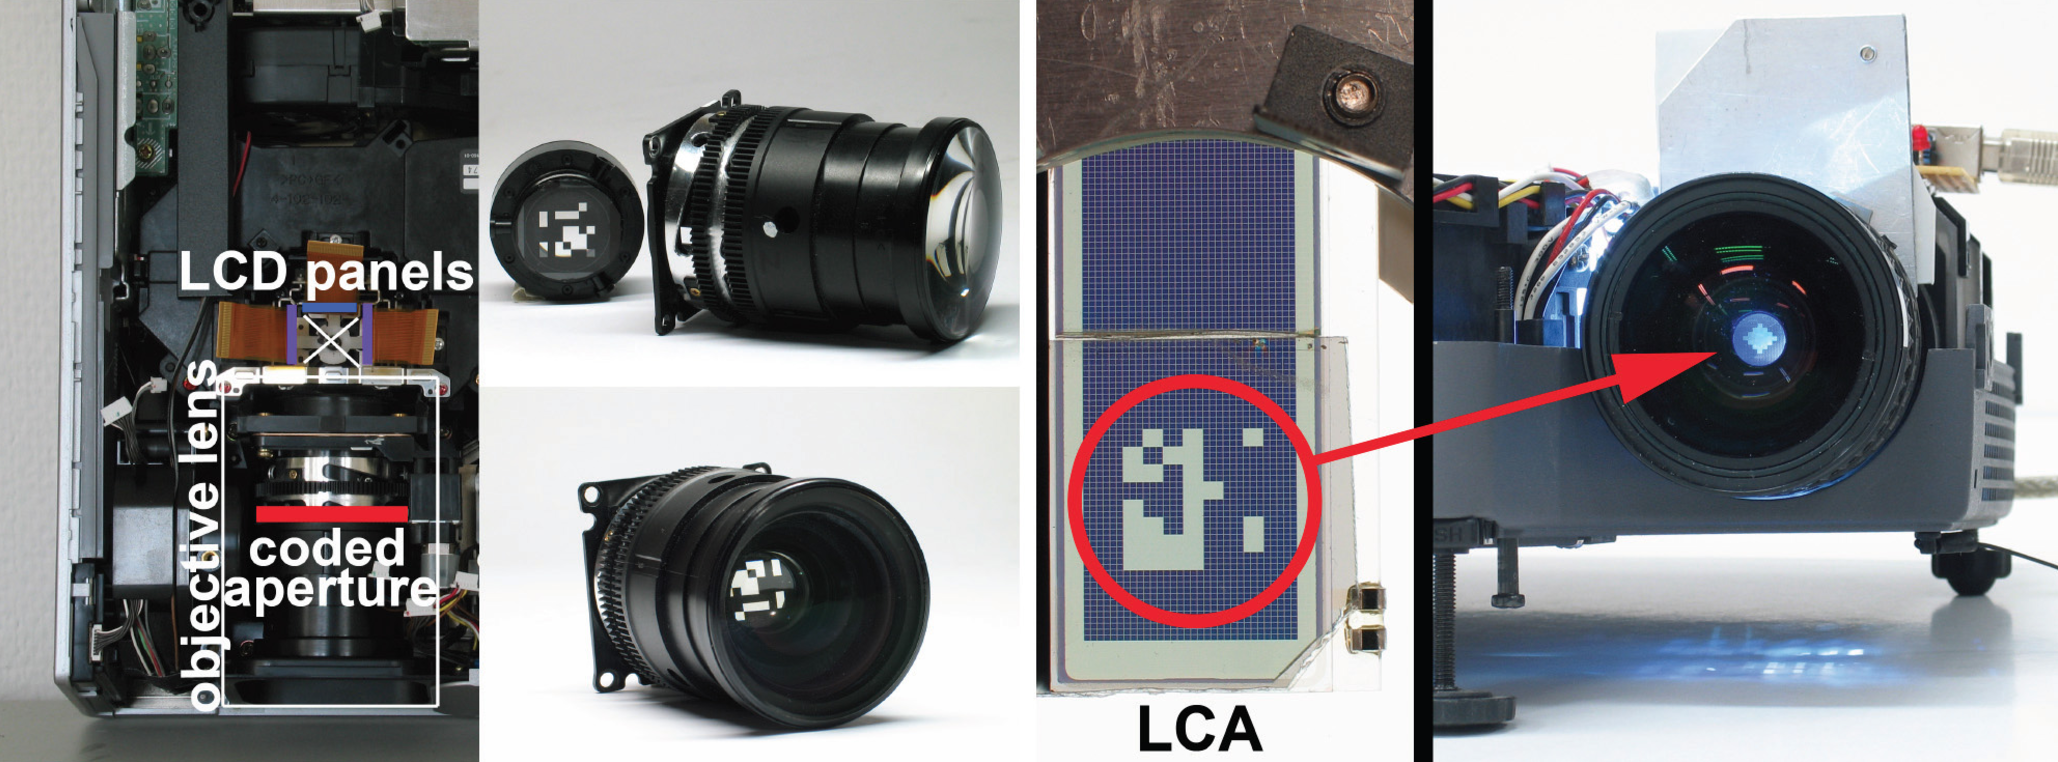 Two prototypes: a static attenuation mask integrated into the aperture plane of a projector improves digital defocus compensation through inverse filtering (left). Replacing the aperture with a transparent liquid crystal array allows dynamic attenuation mask patterns to be encoded (right). We compute the adaptive patterns by optimizing for light throughput while preserving spatial frequencies that are perceivable by a human observer. Both approaches significantly improve depth-of-field through inverse light filtering when compared to circular aperture stops.While static coded apertures are easier to realize and less expensive, adaptive coded apertures are more effective.